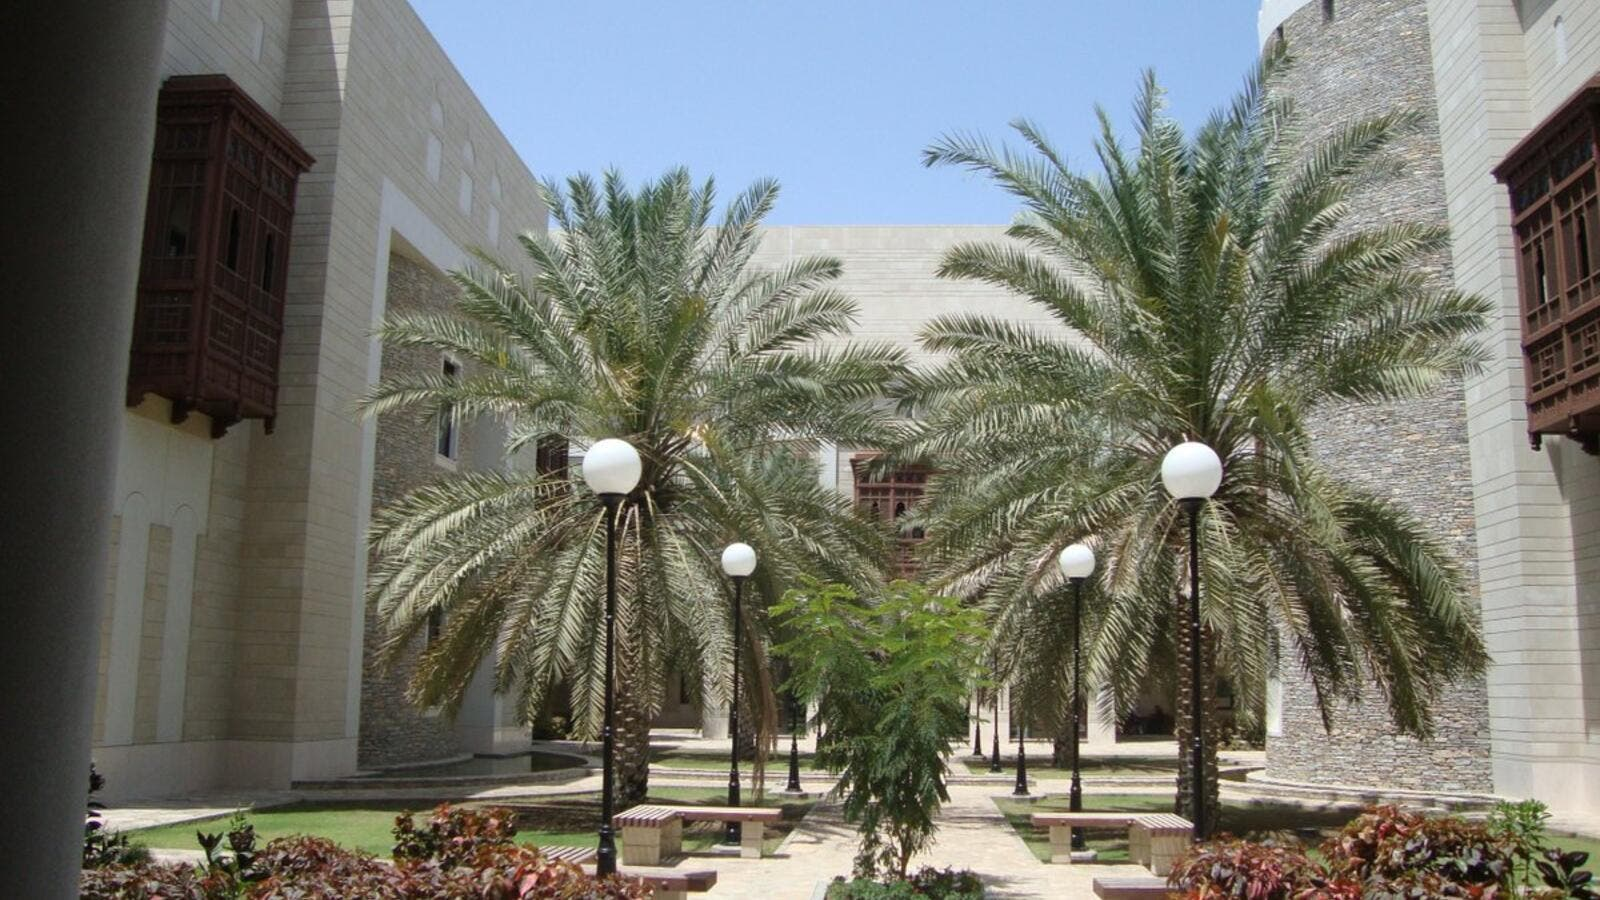 Emerald Library in Sultan Qaboos University. (Twitter)